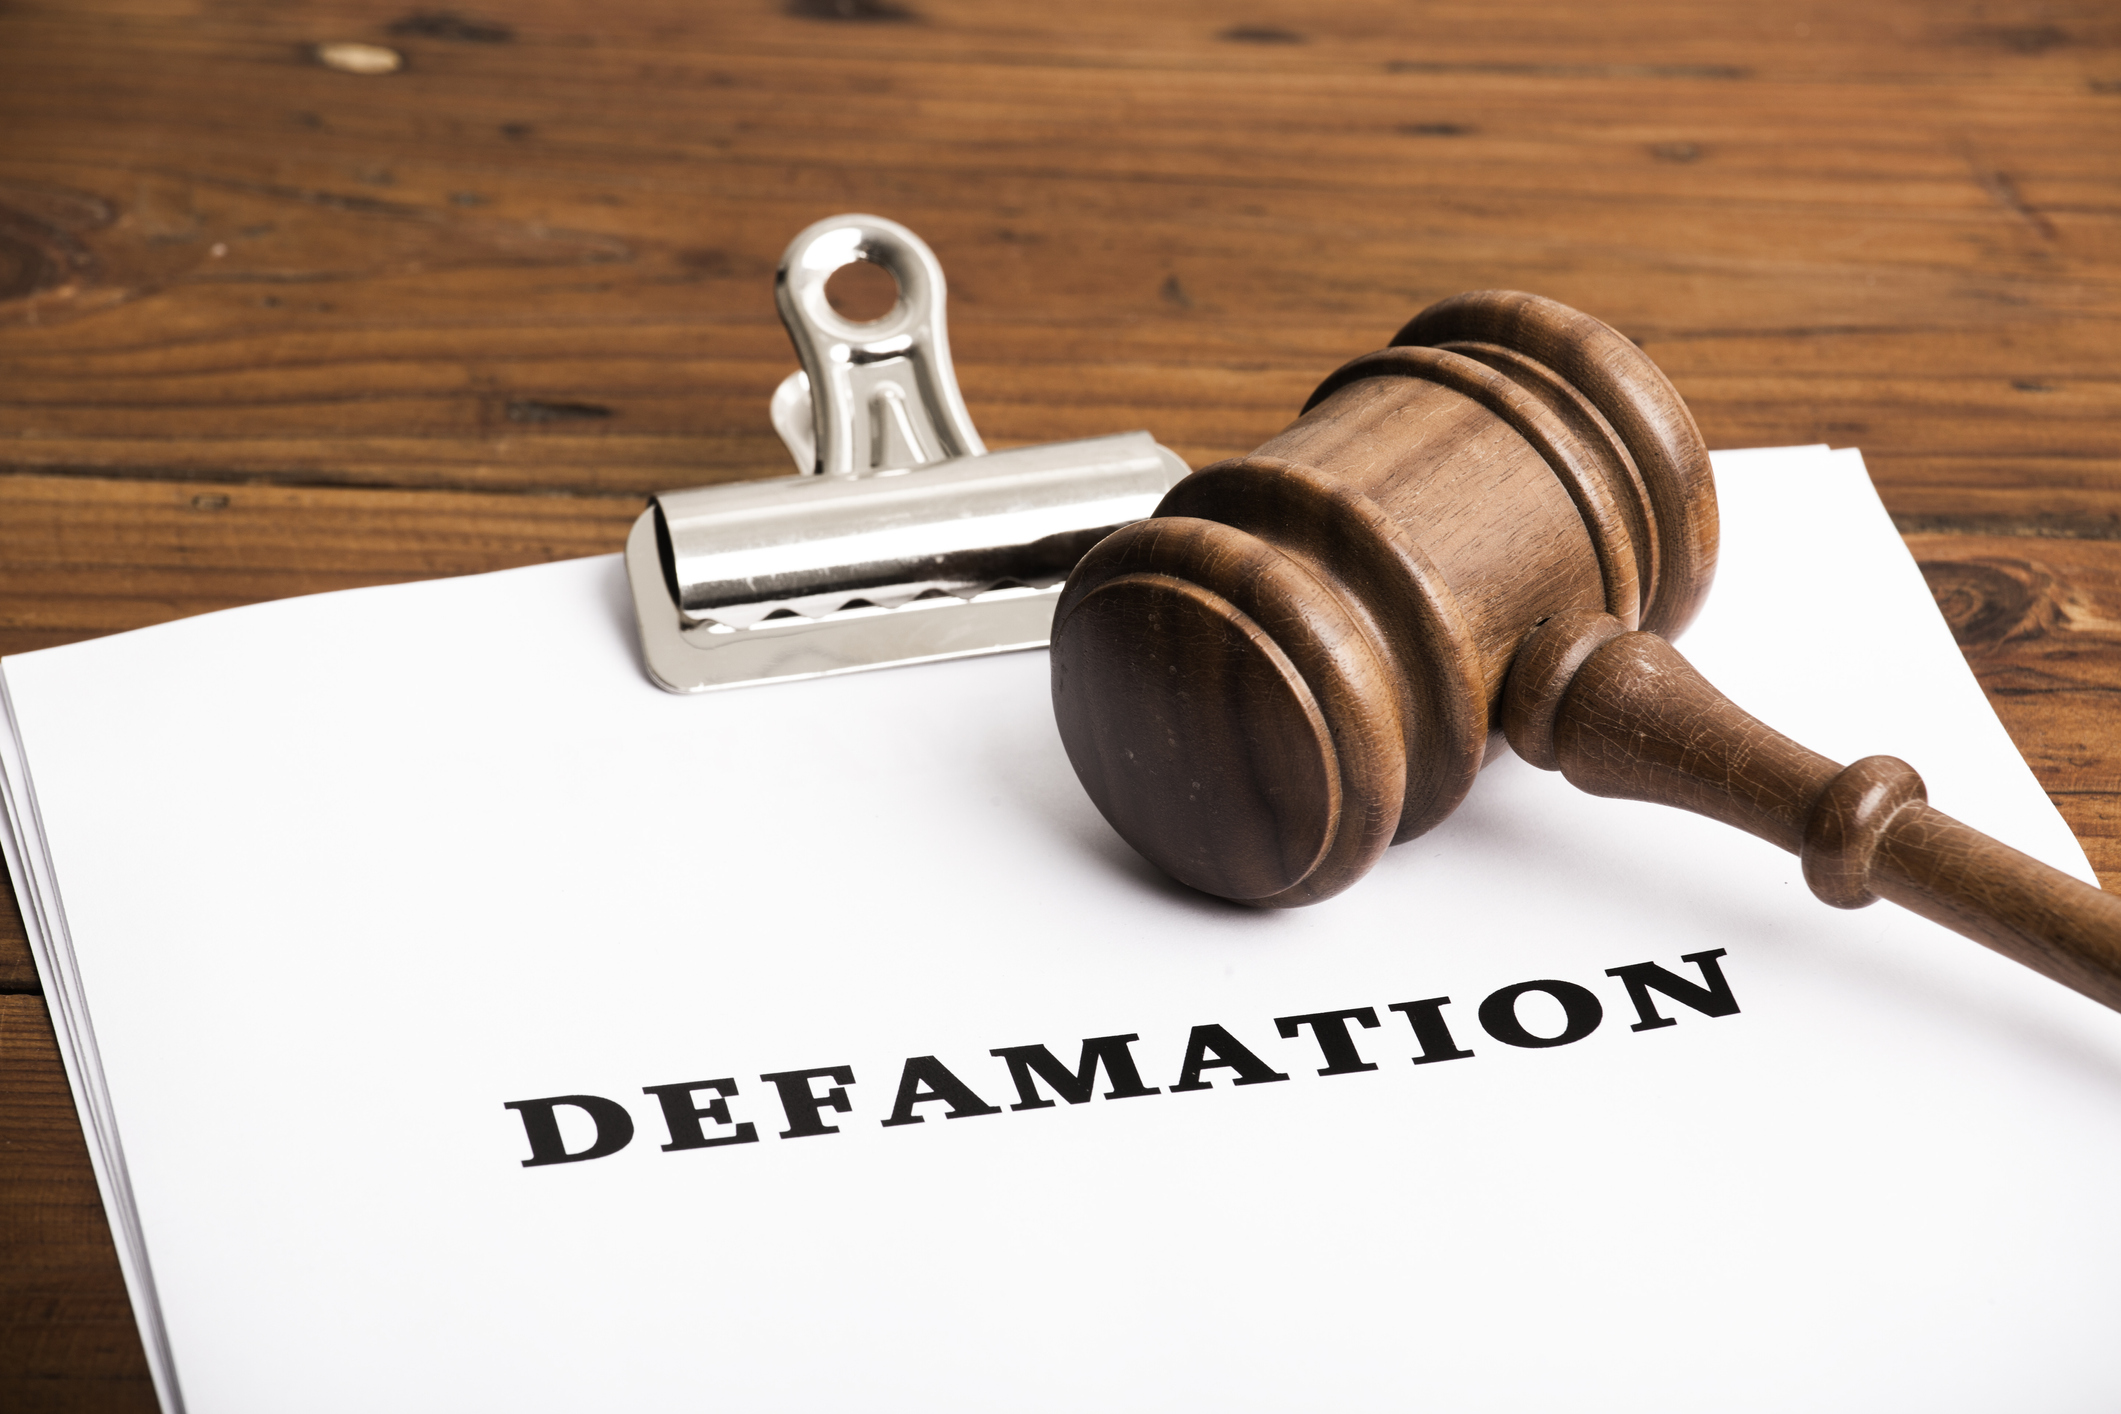 Defamation file in court with gavel